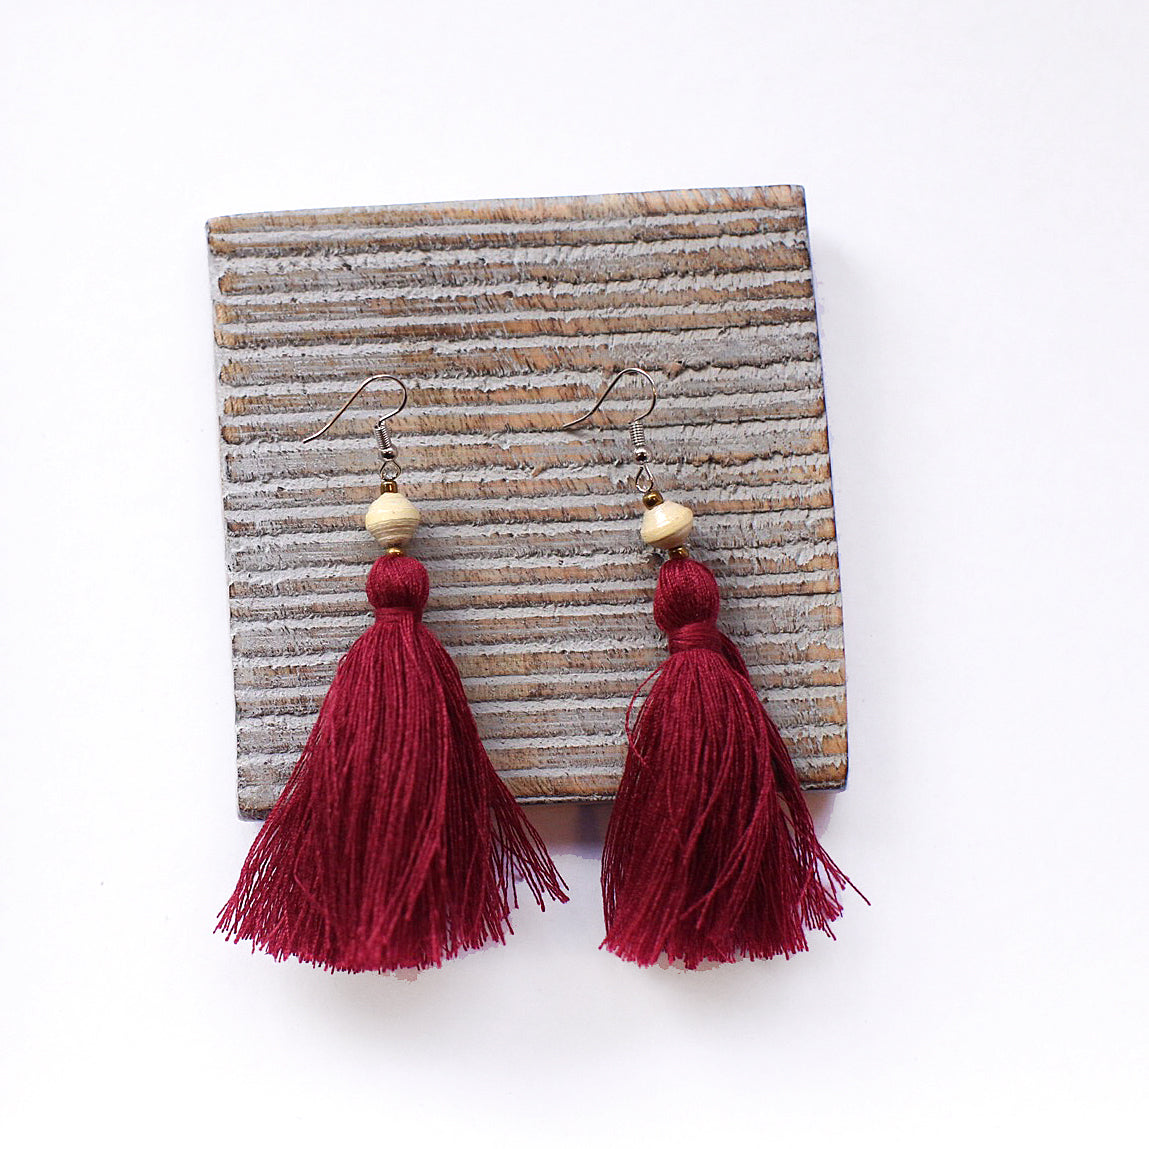 Kwer Earrings